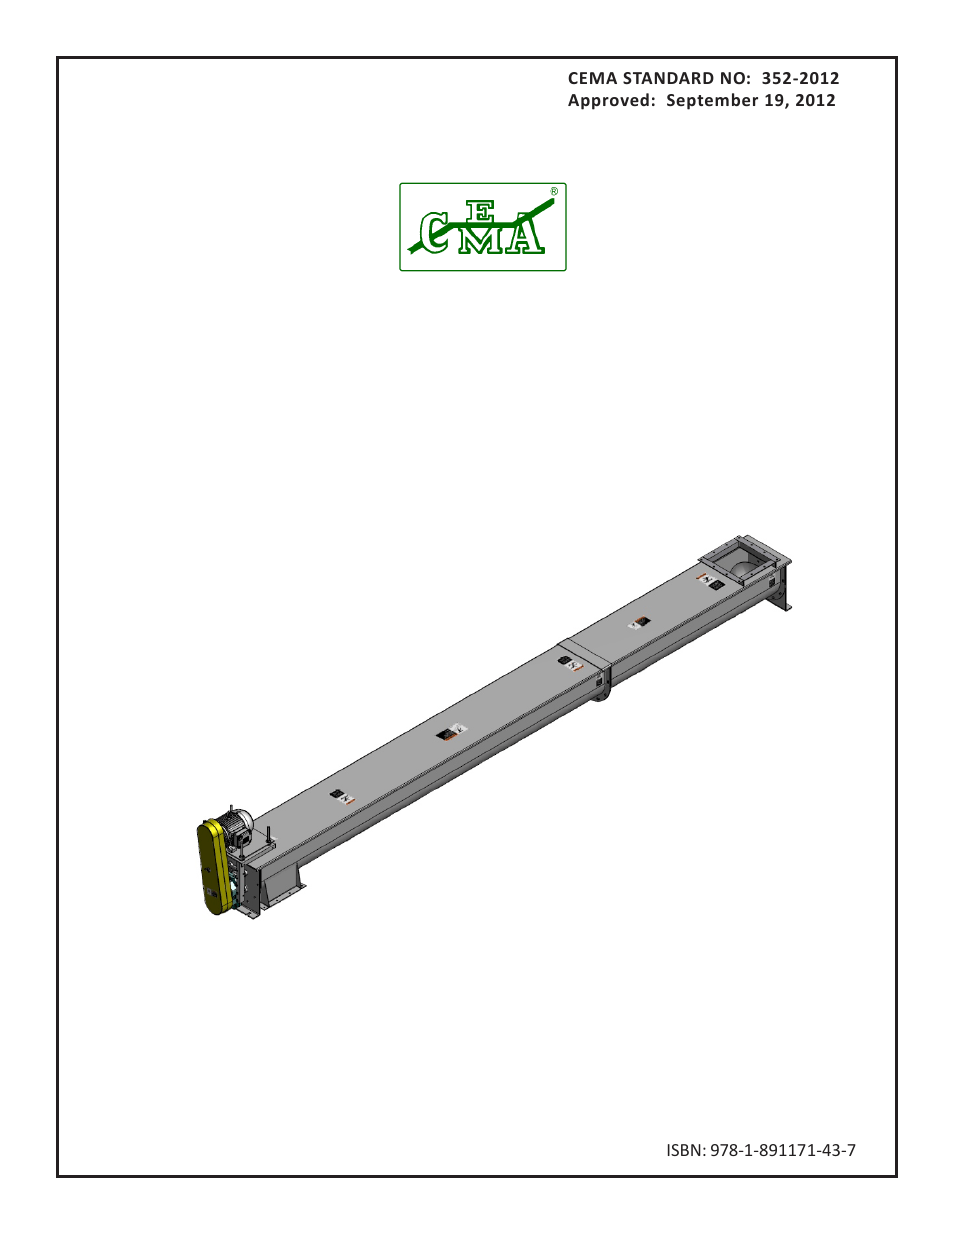 Martin Sprocket & Gear Screw Conveyor Safety User Manual